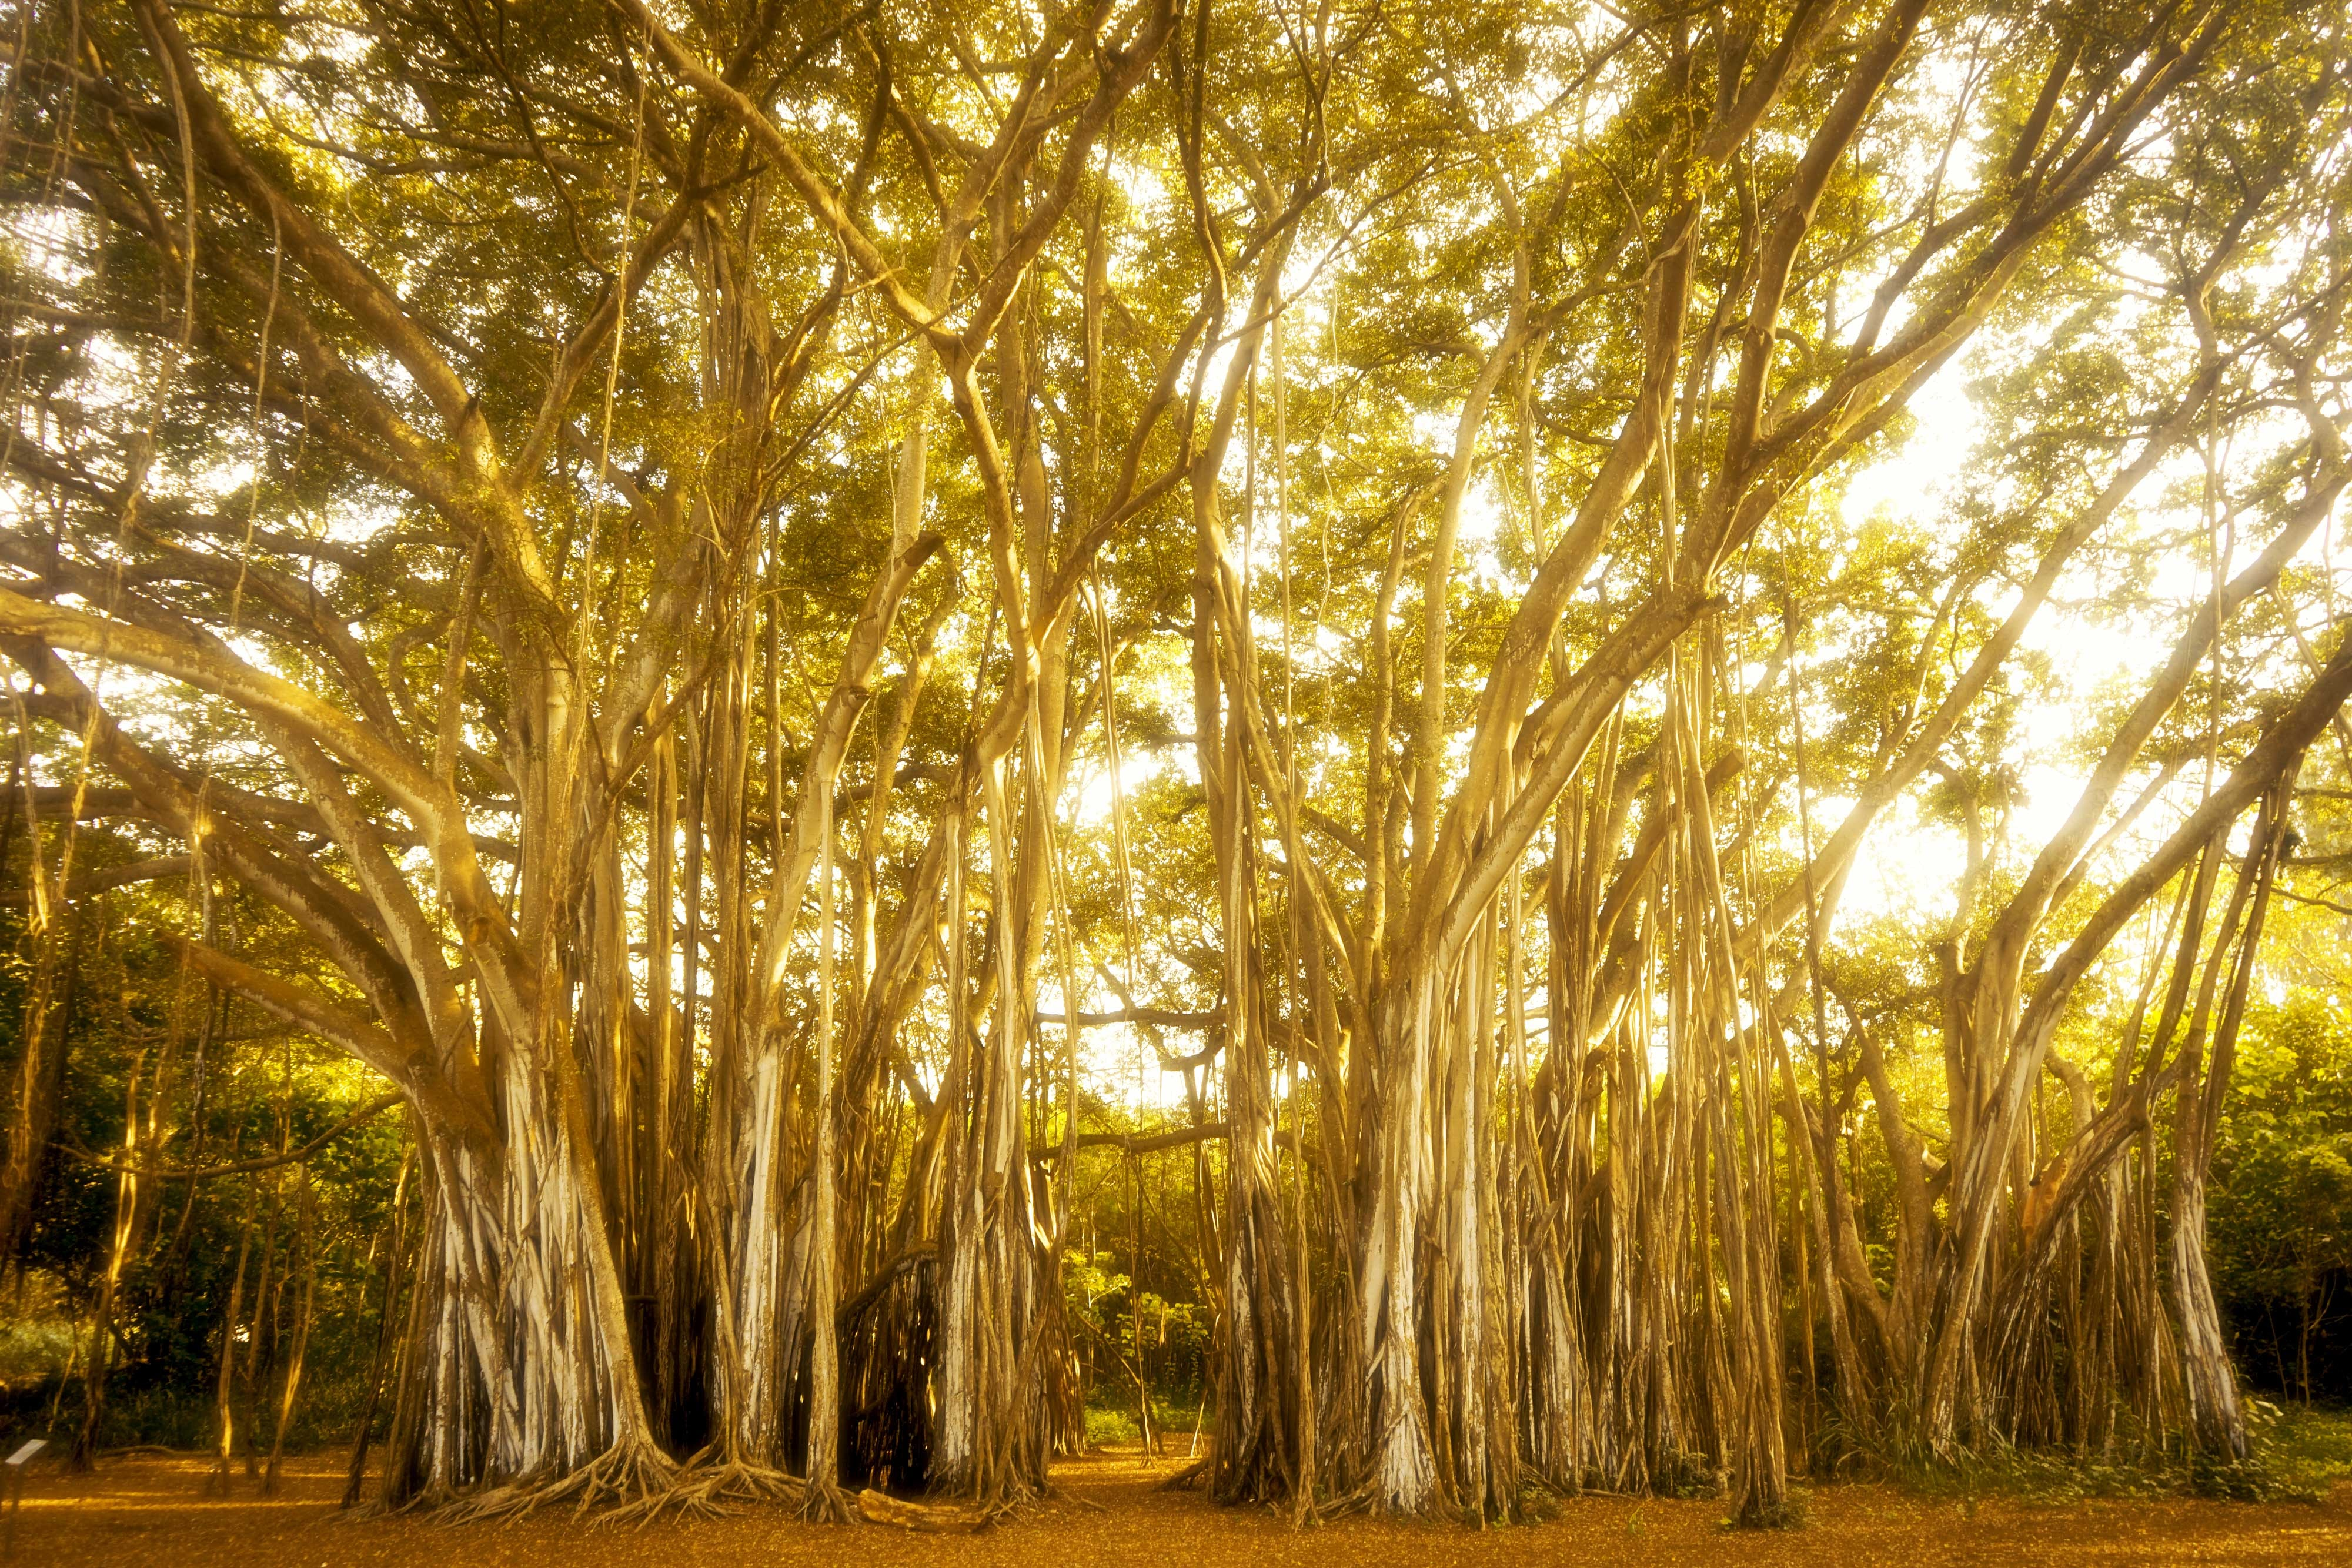 golden hour photography of trees